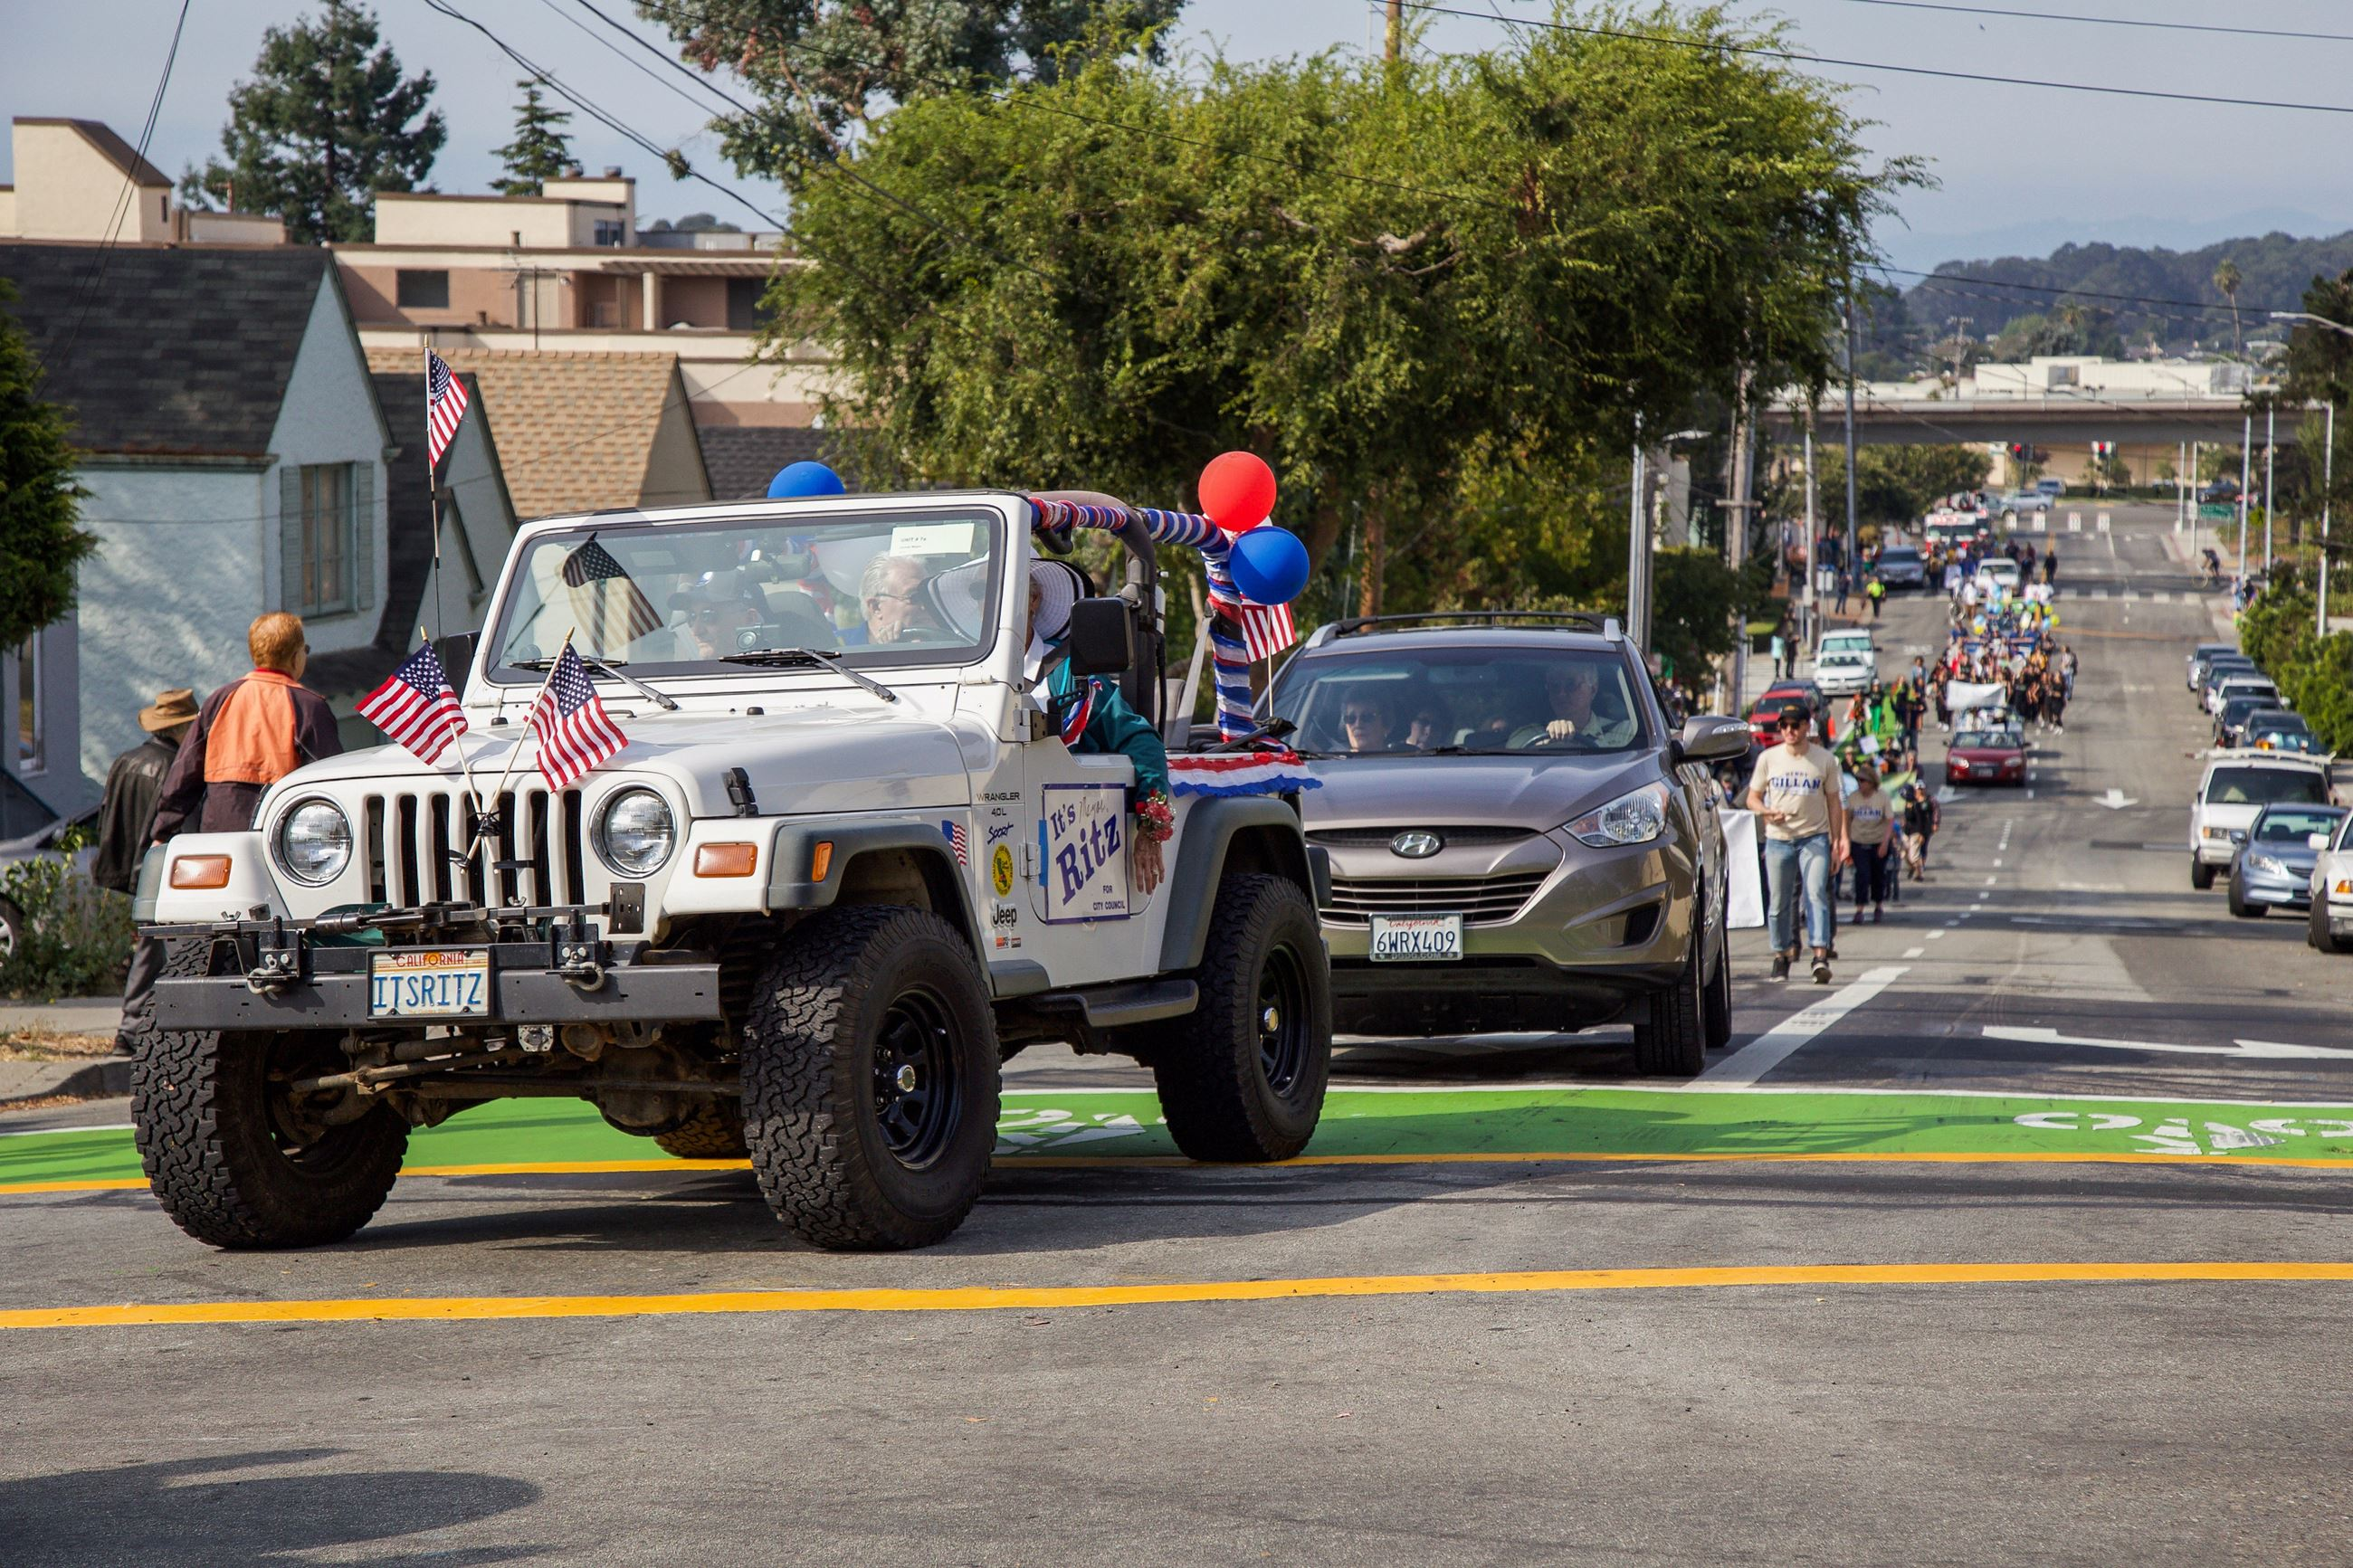 222 Former Mayors Unit in Parade 6 - Photo by Marin Stuart